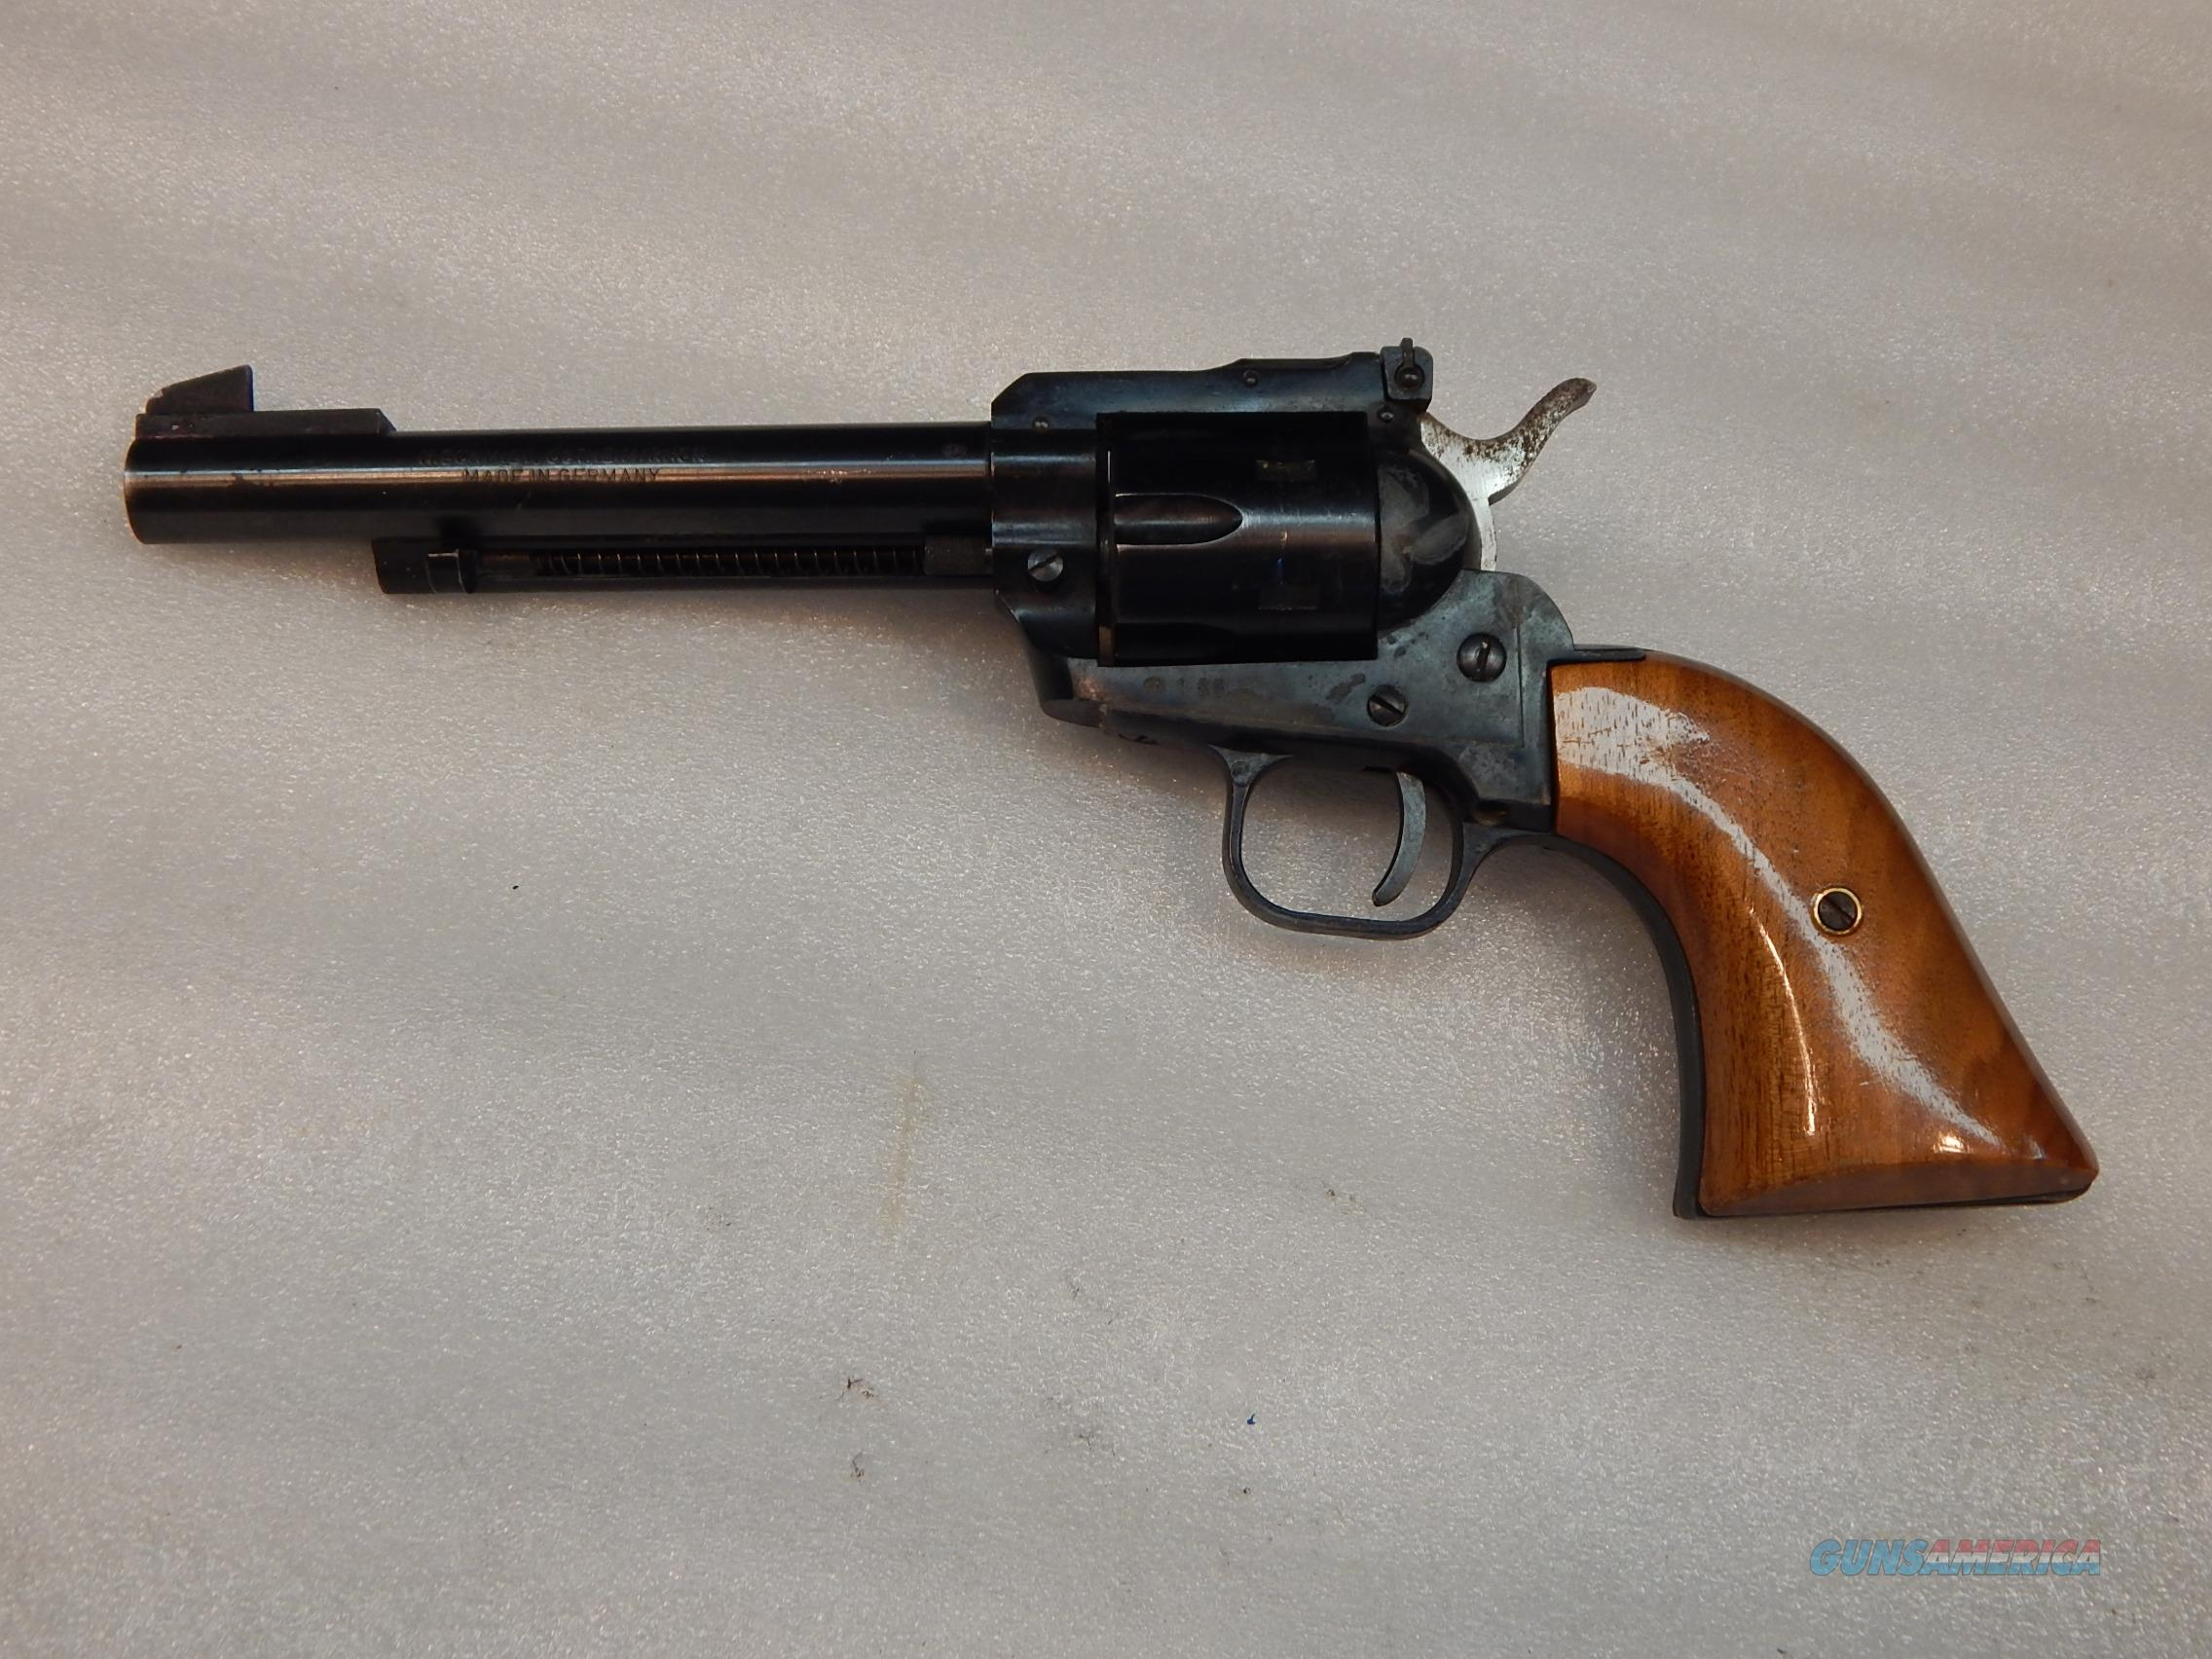 H. Schmidt  22LR SA Revolver - Made in Germany  Guns > Pistols > H Misc Pistols